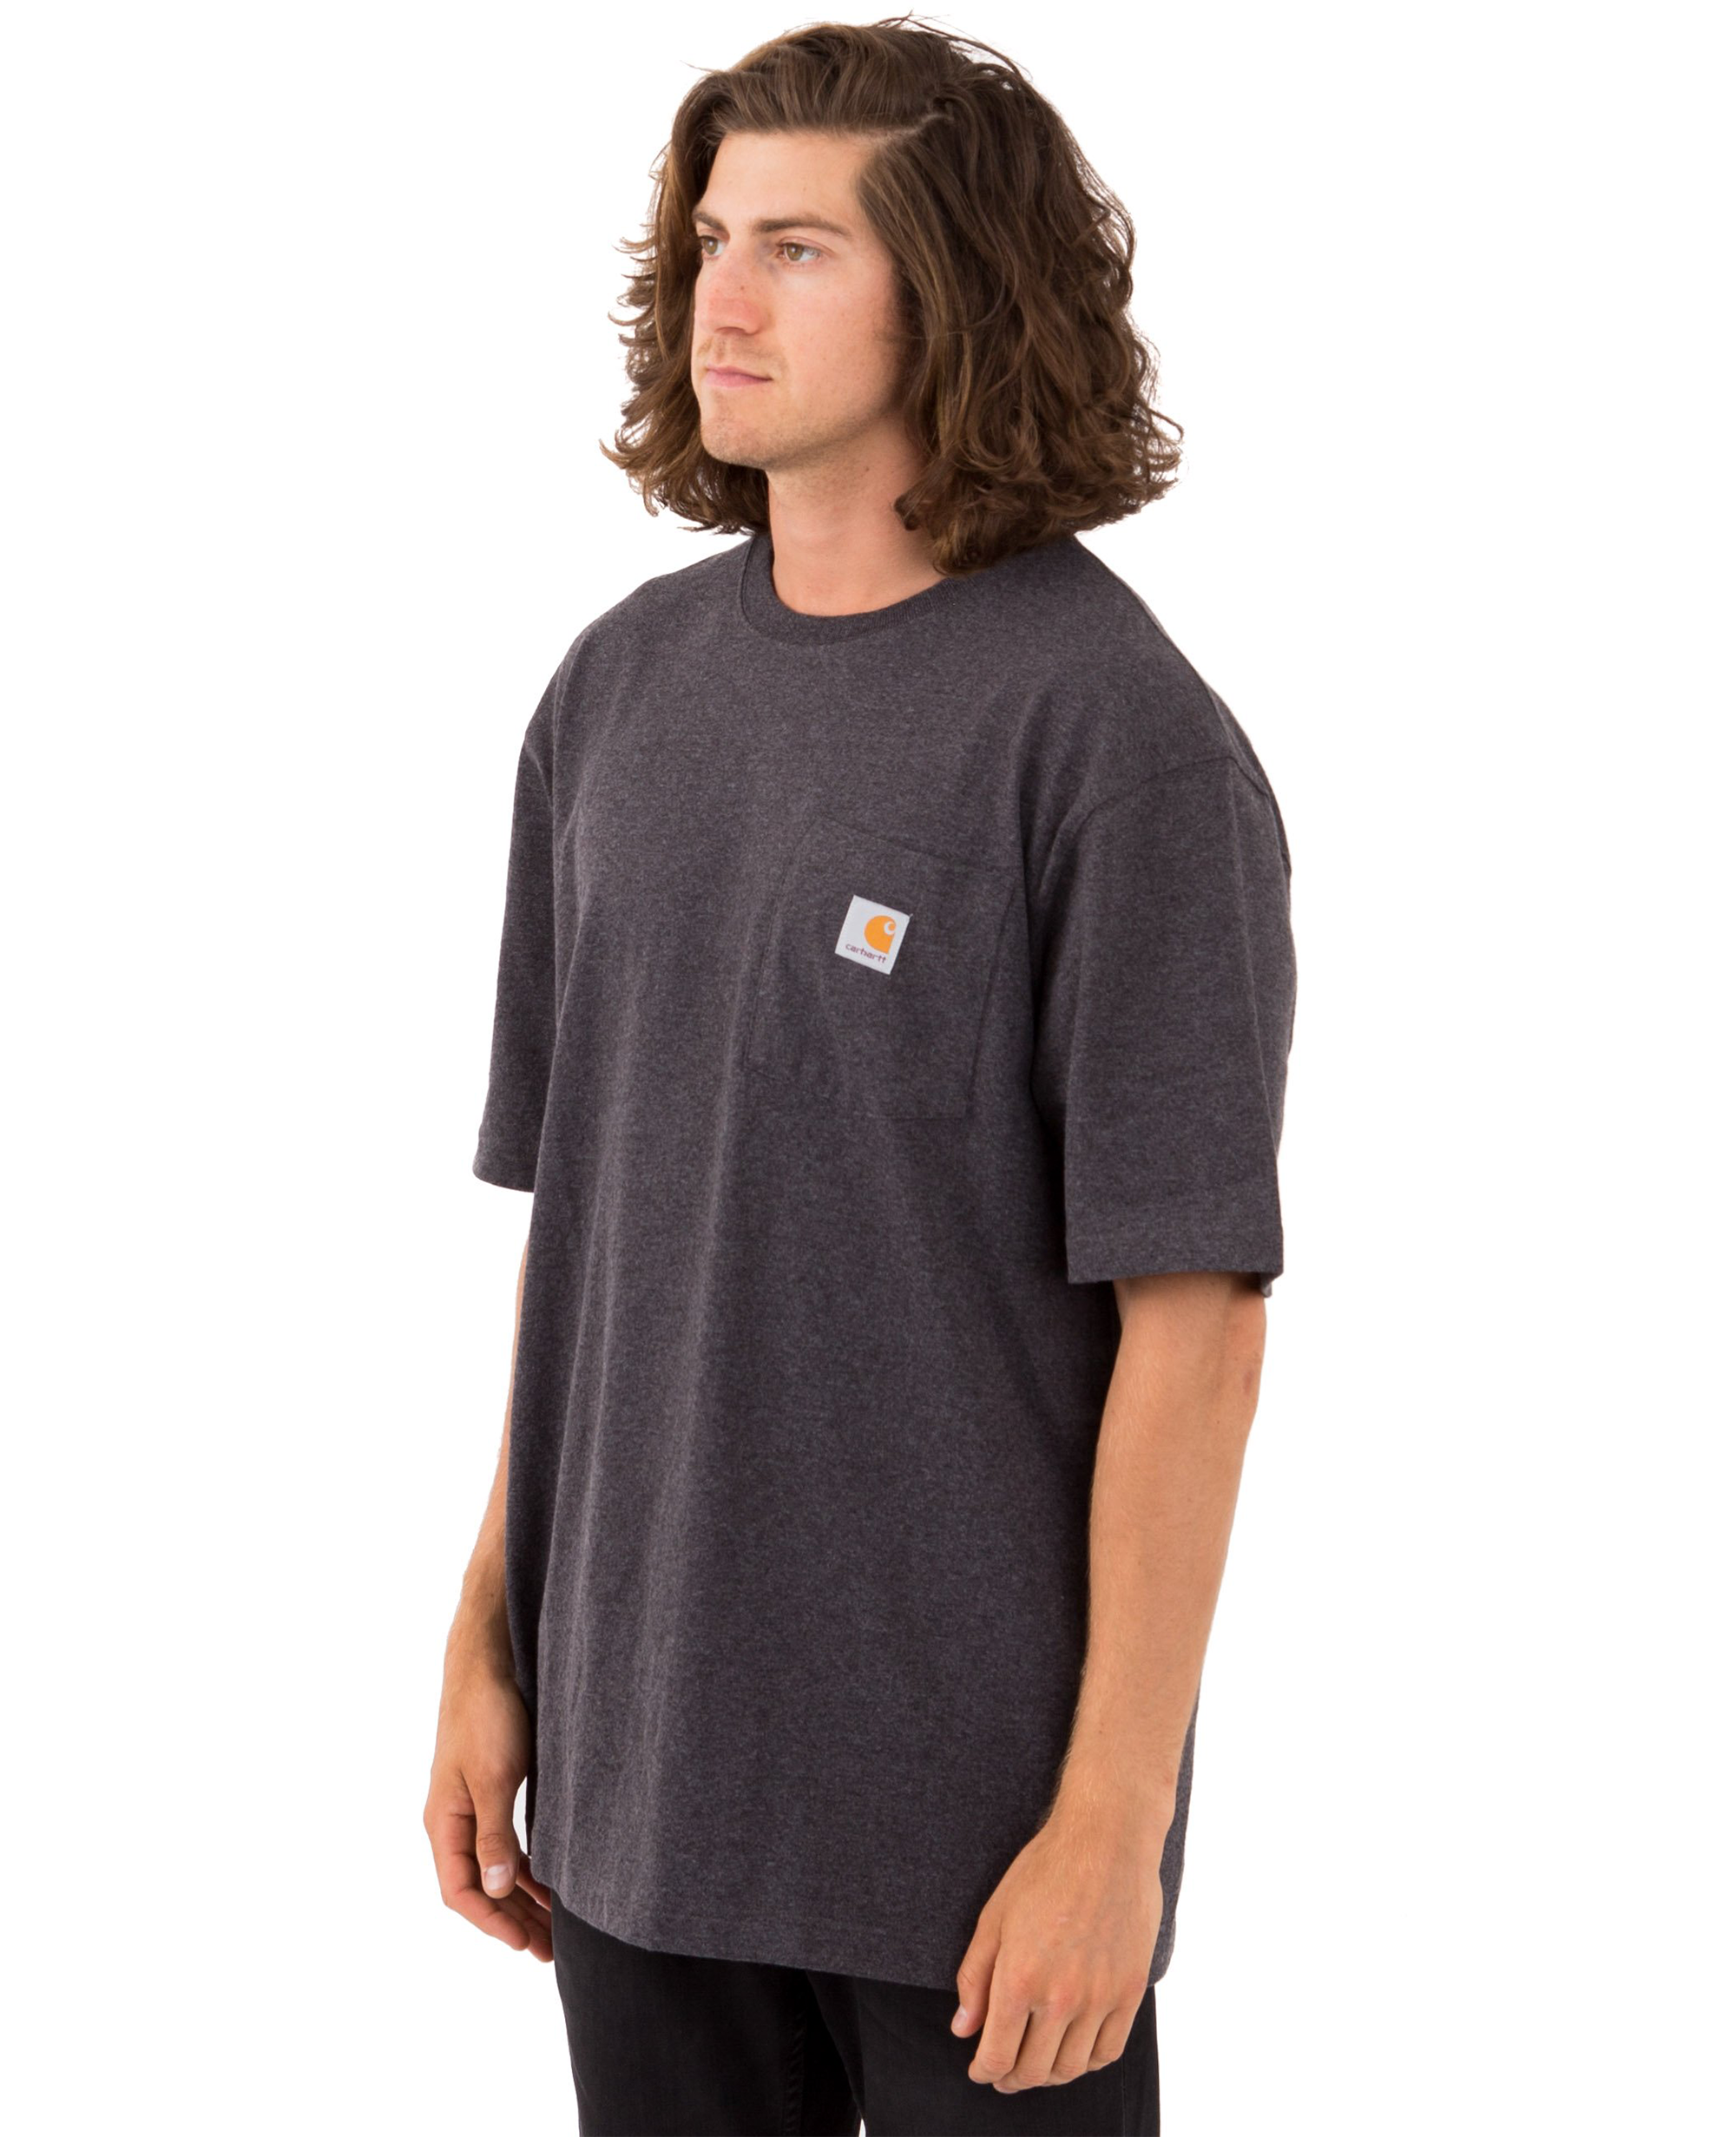 Heavyweight Pocket T-shirt in Carbon Heather - T-Shirts - Carhartt WIP - BRANMA